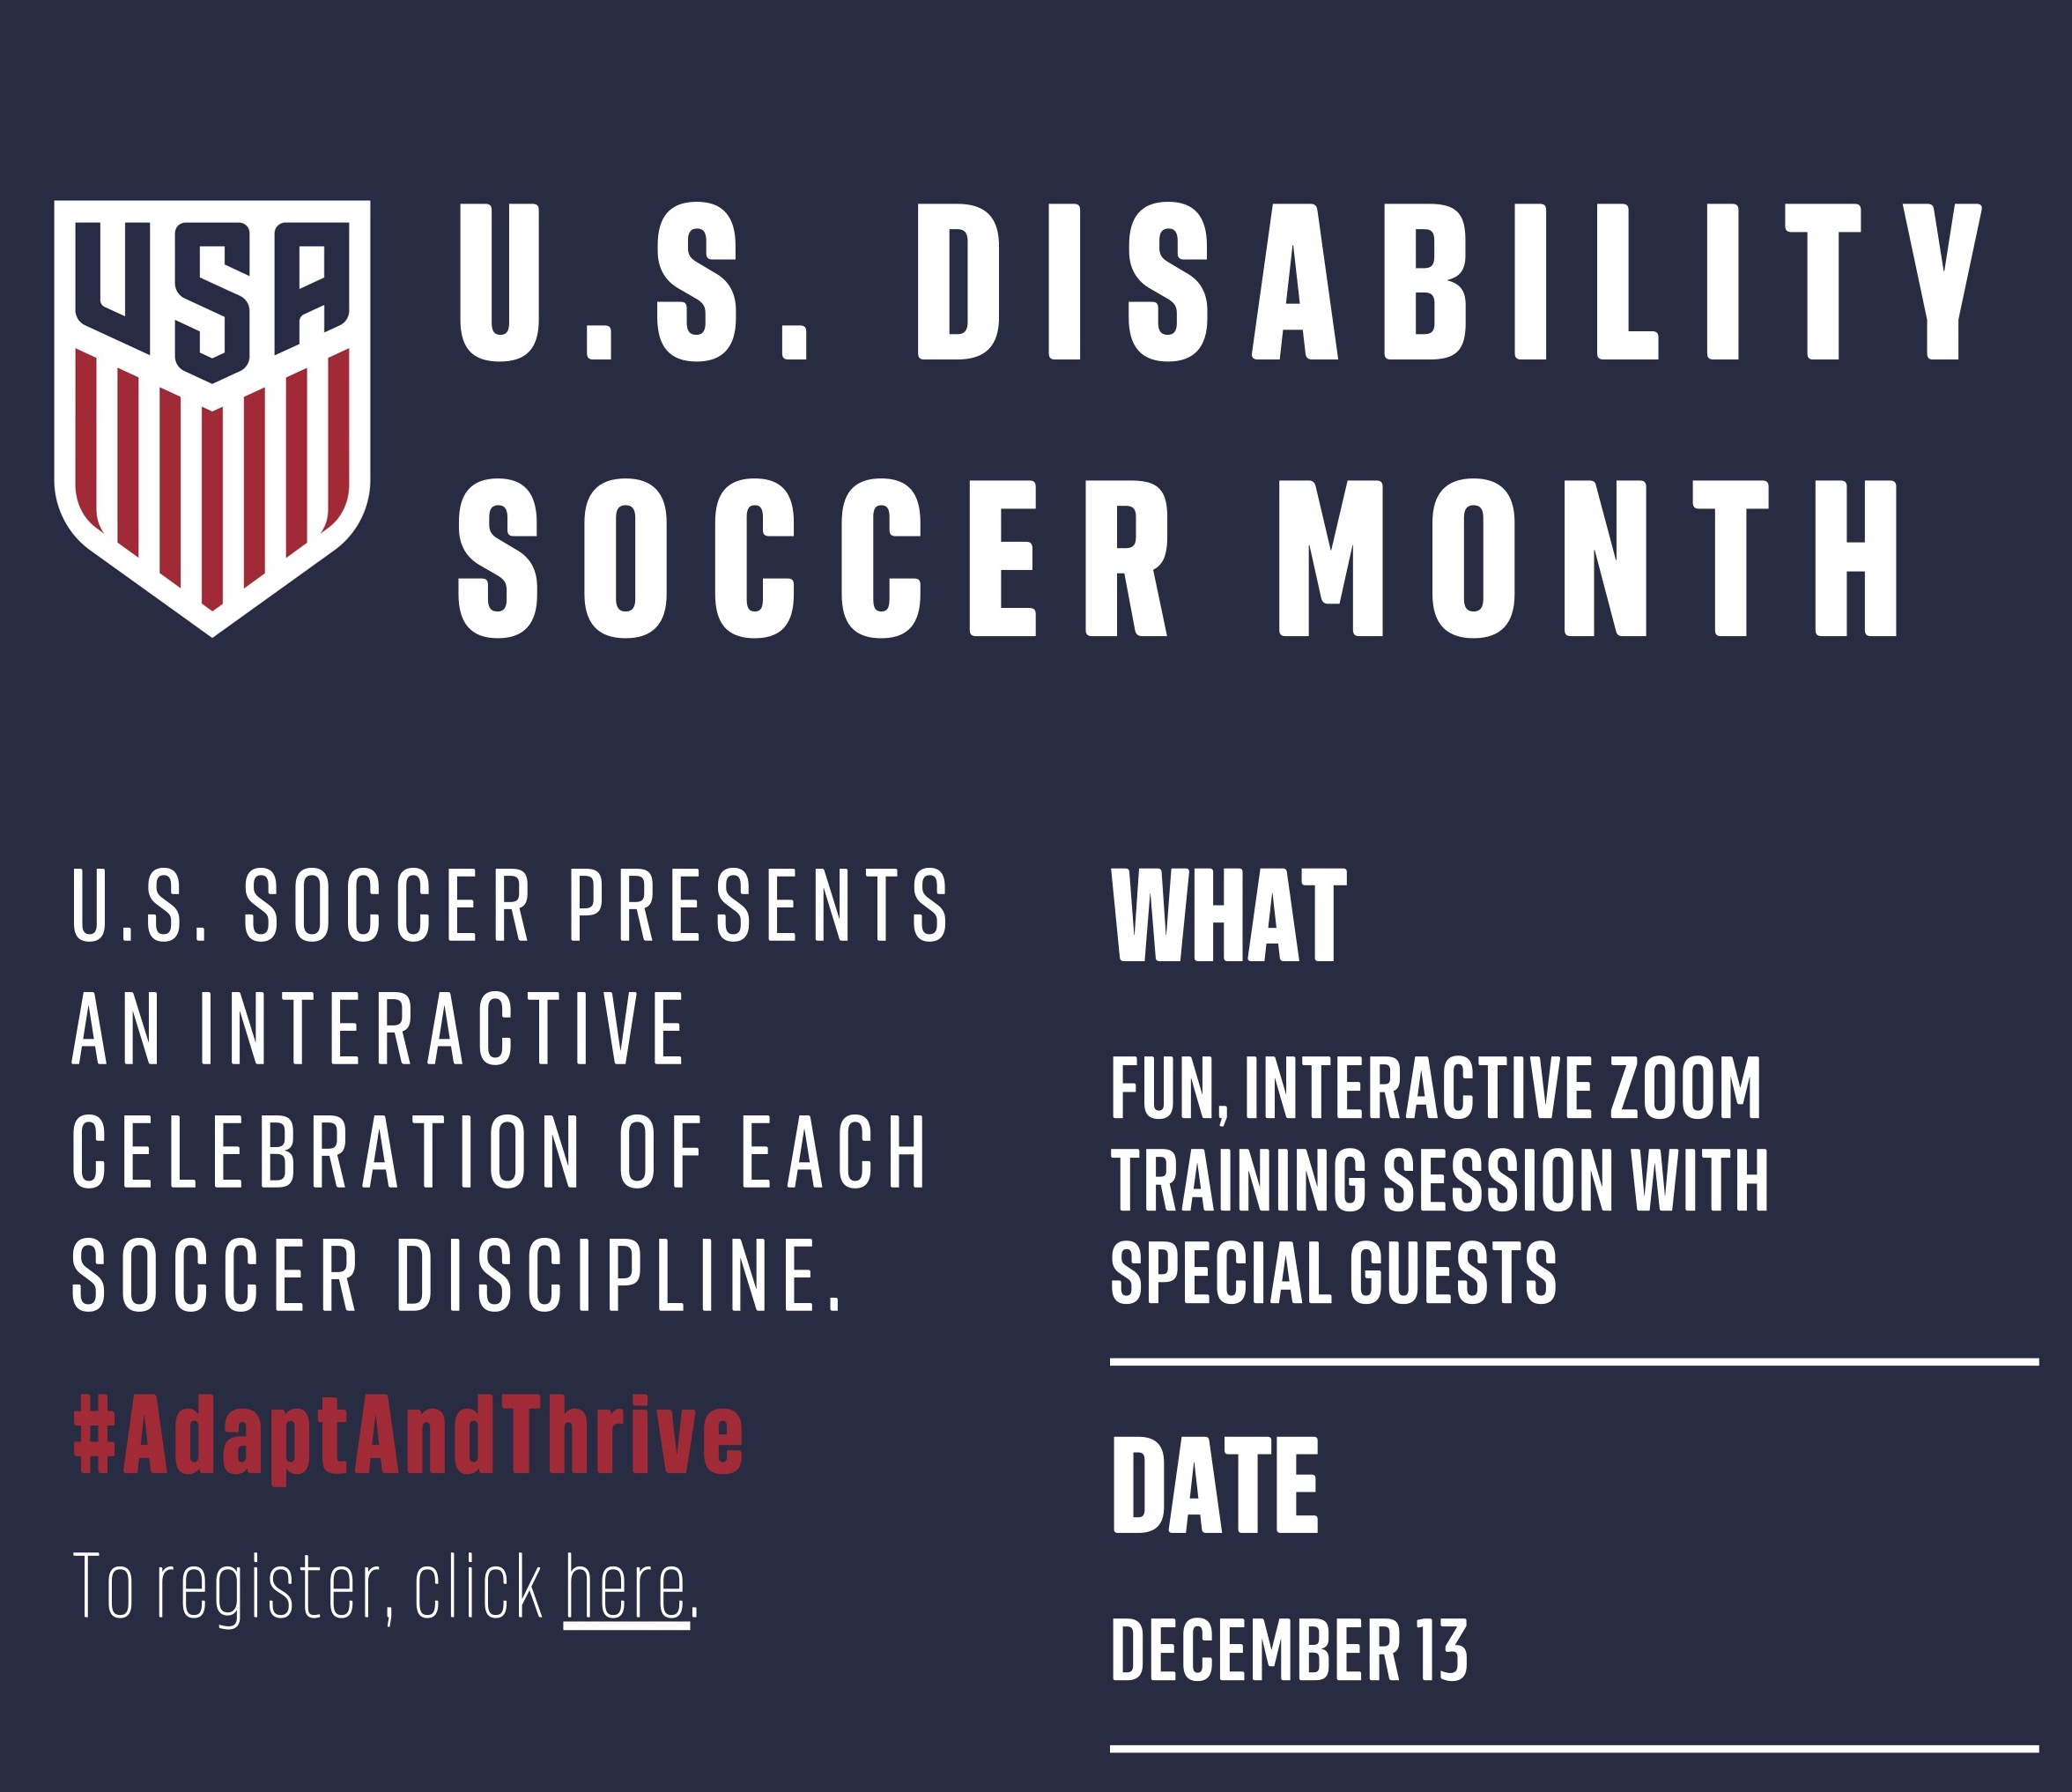 Introducing The Women In Soccer Summit and US Disability Soccer Month